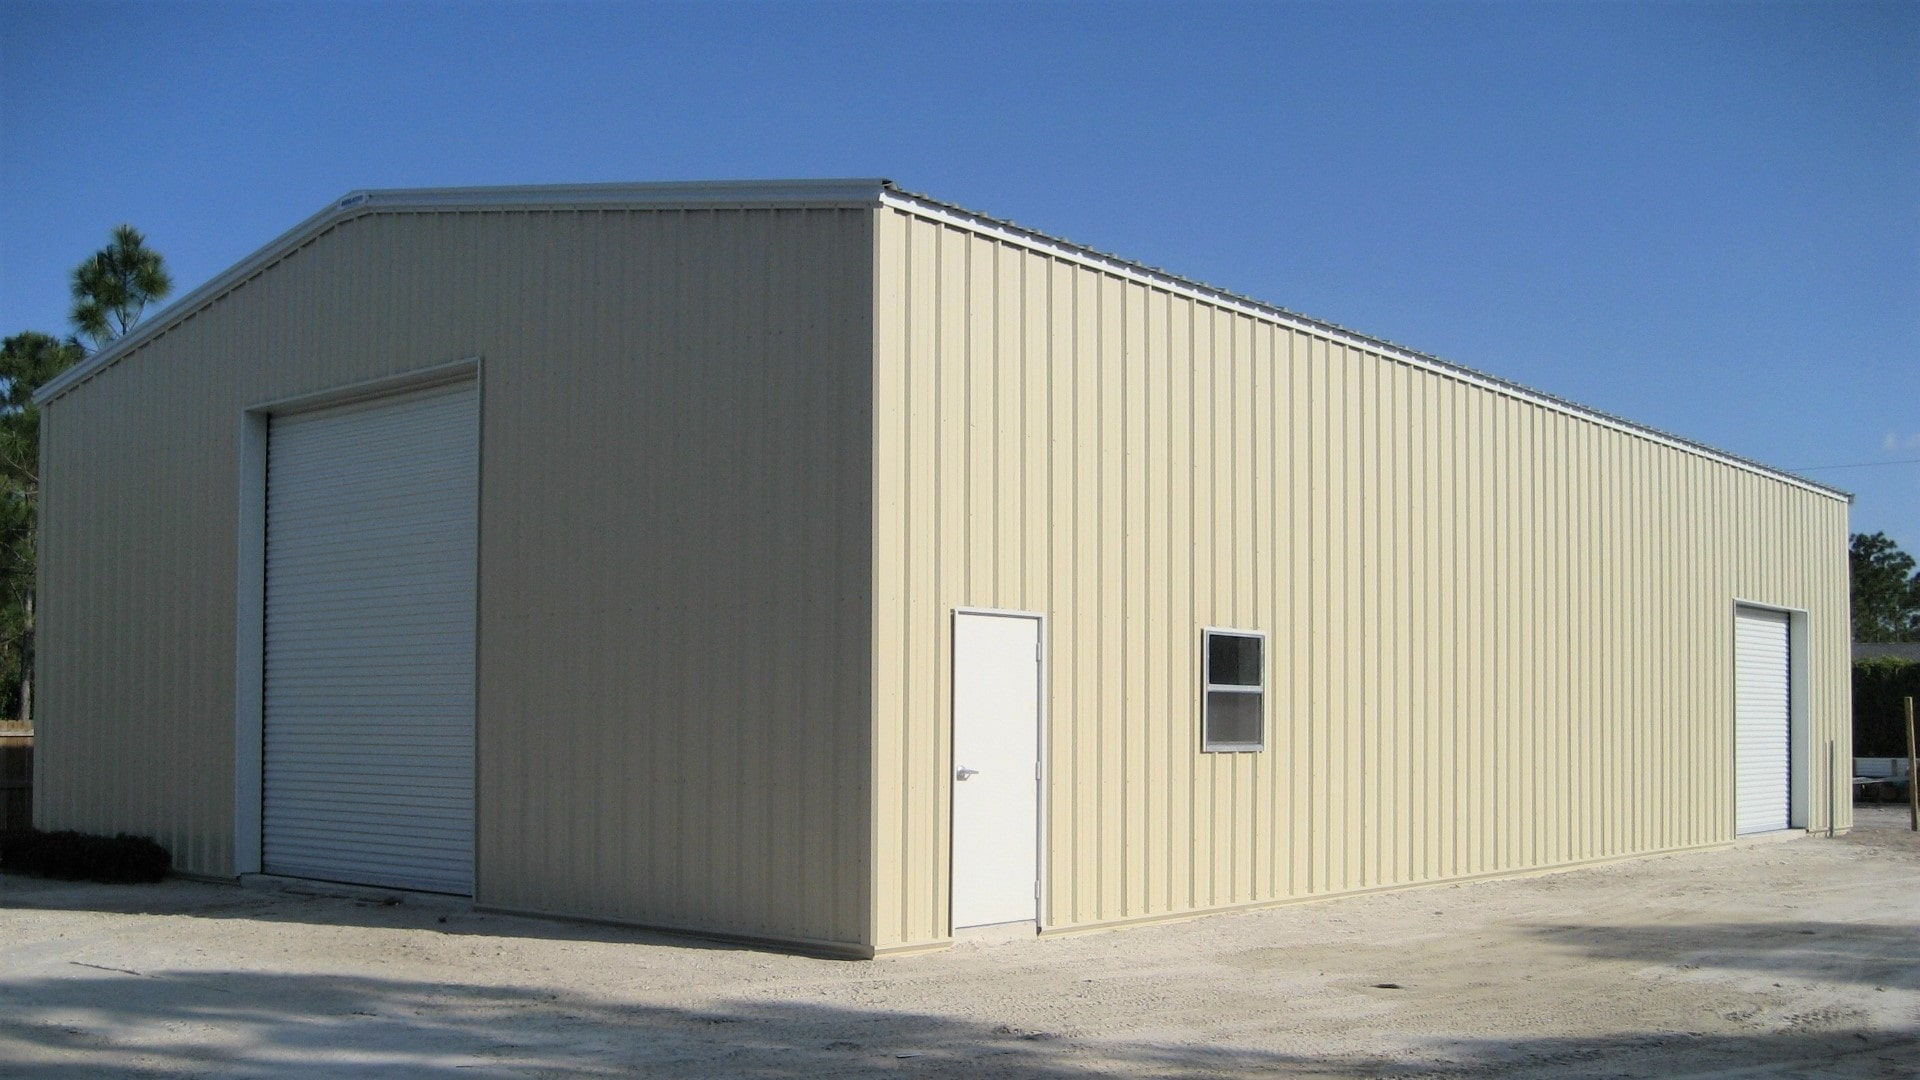 Tan metal garage shop with white trim, white walk door and white rollup door. View of left endwall and front sidewall.